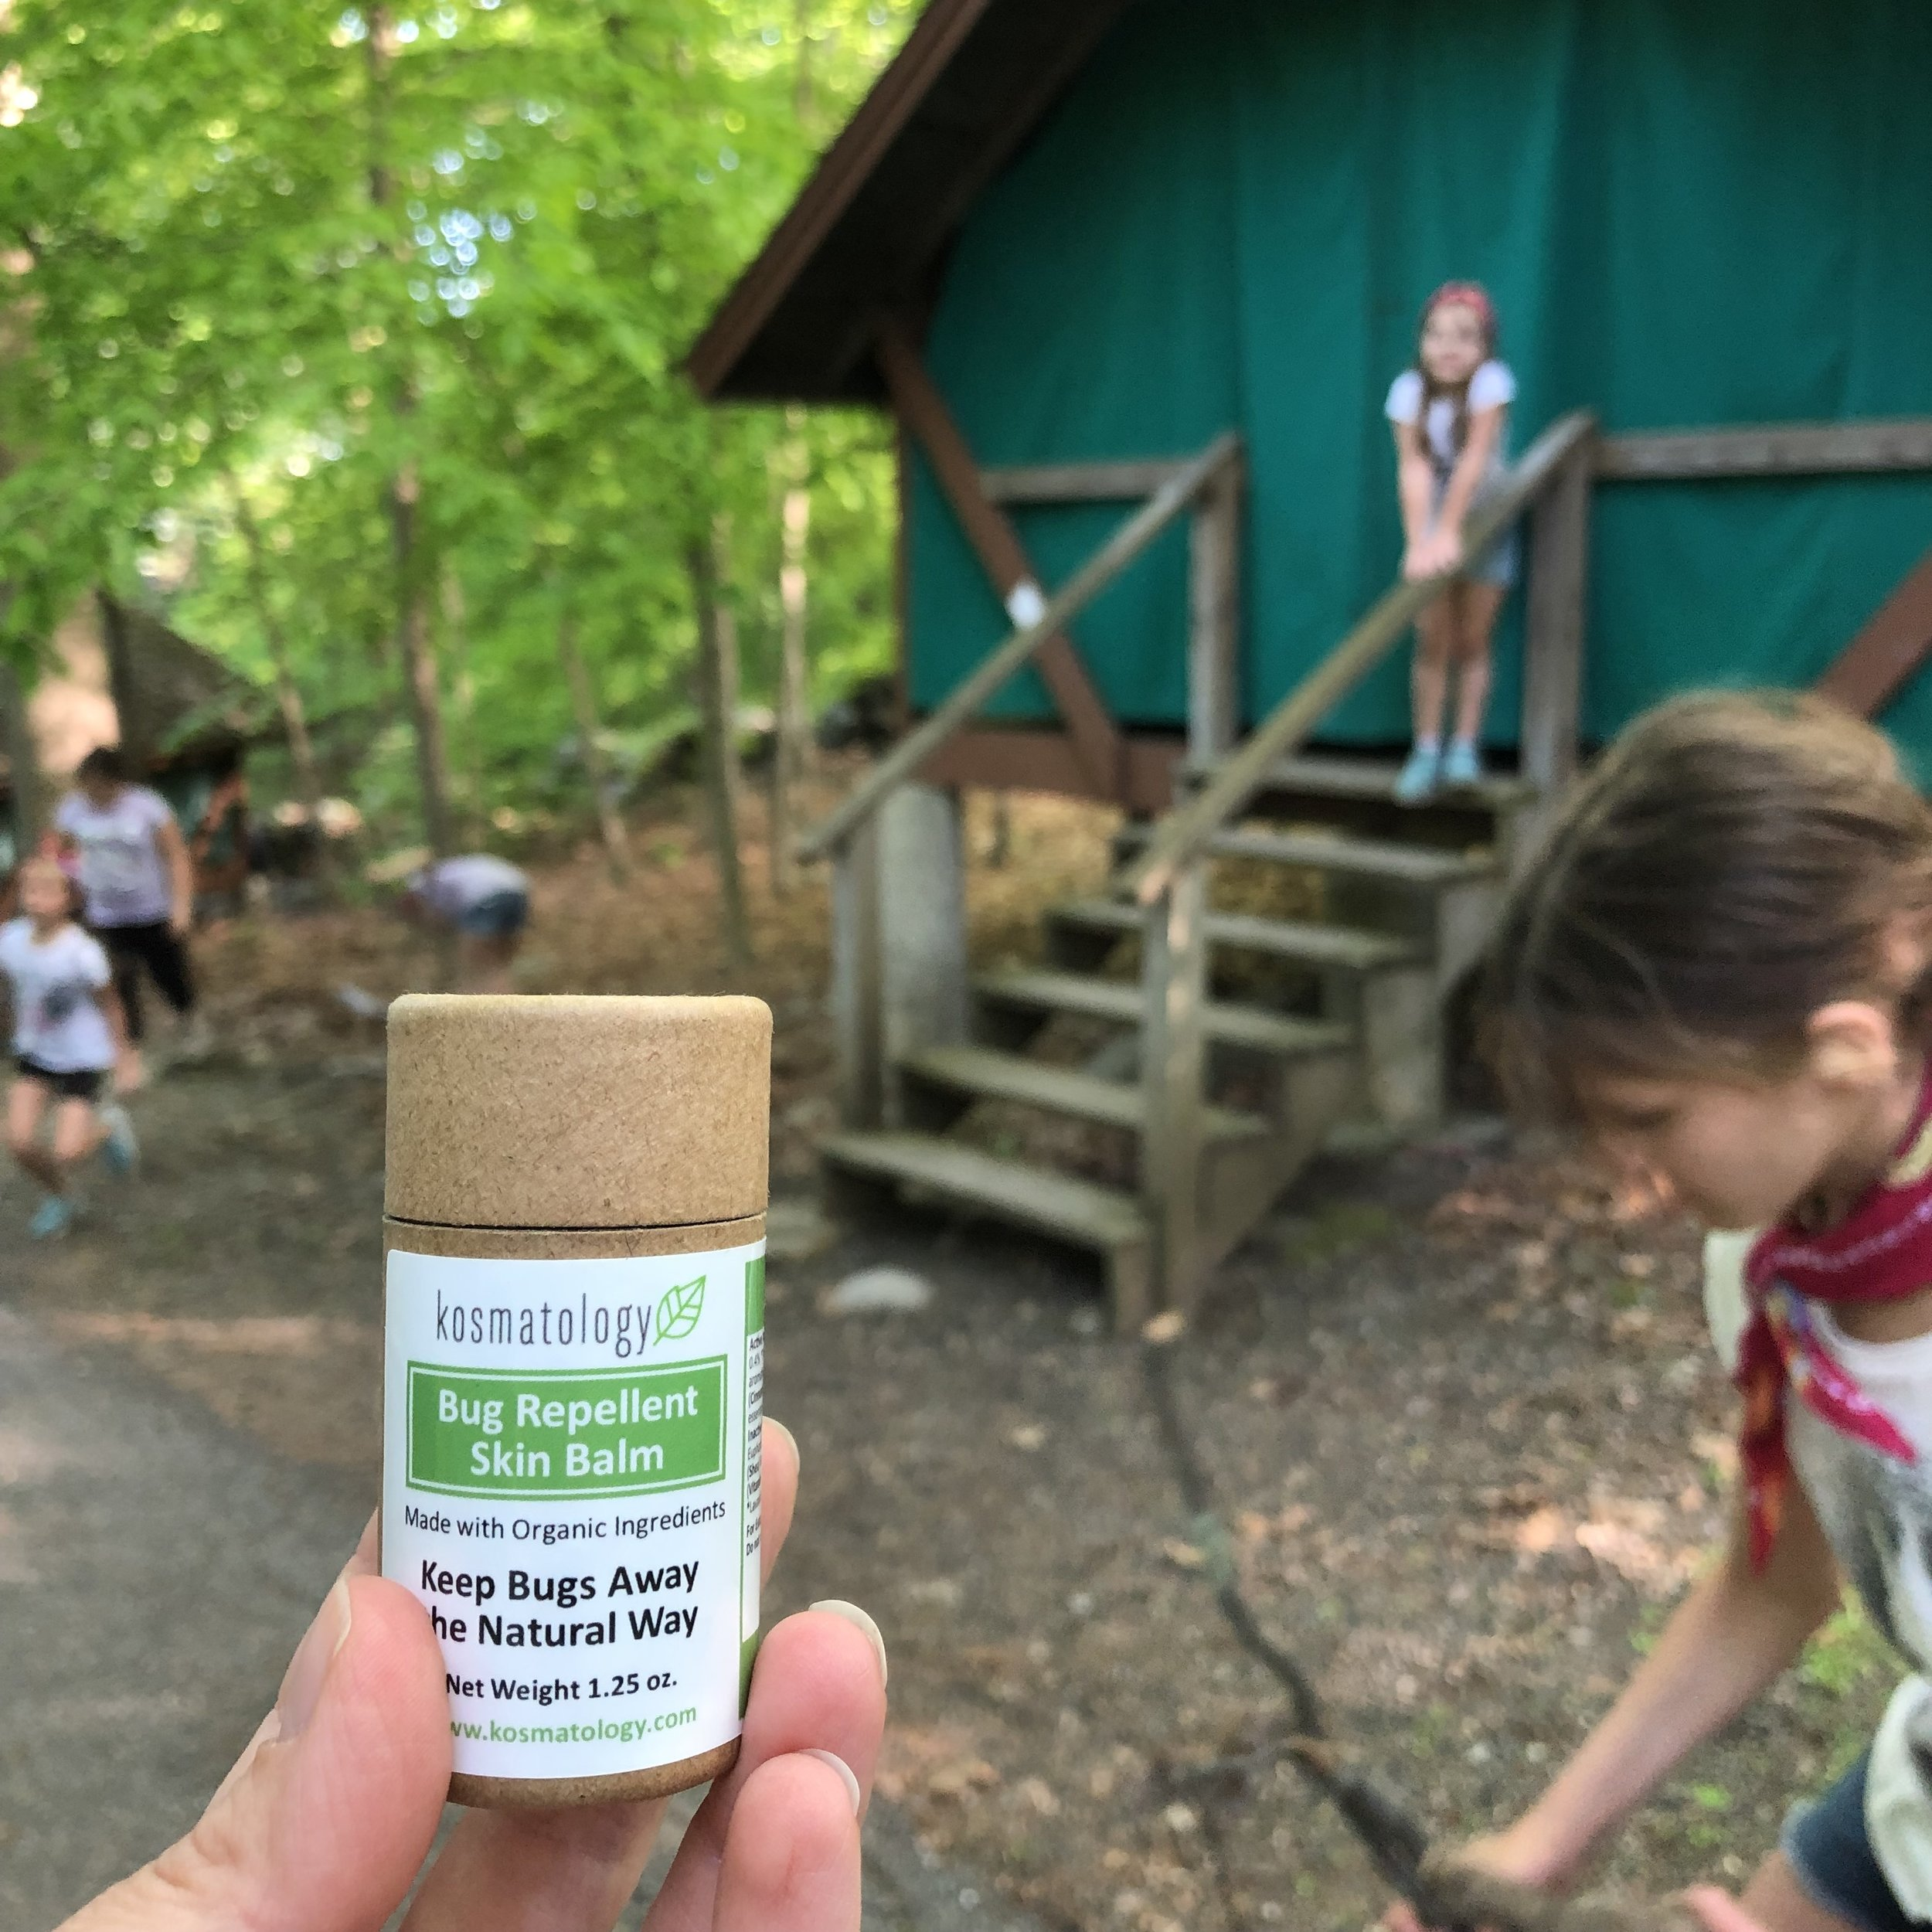 Bug Repellent balm pictured at a camp site